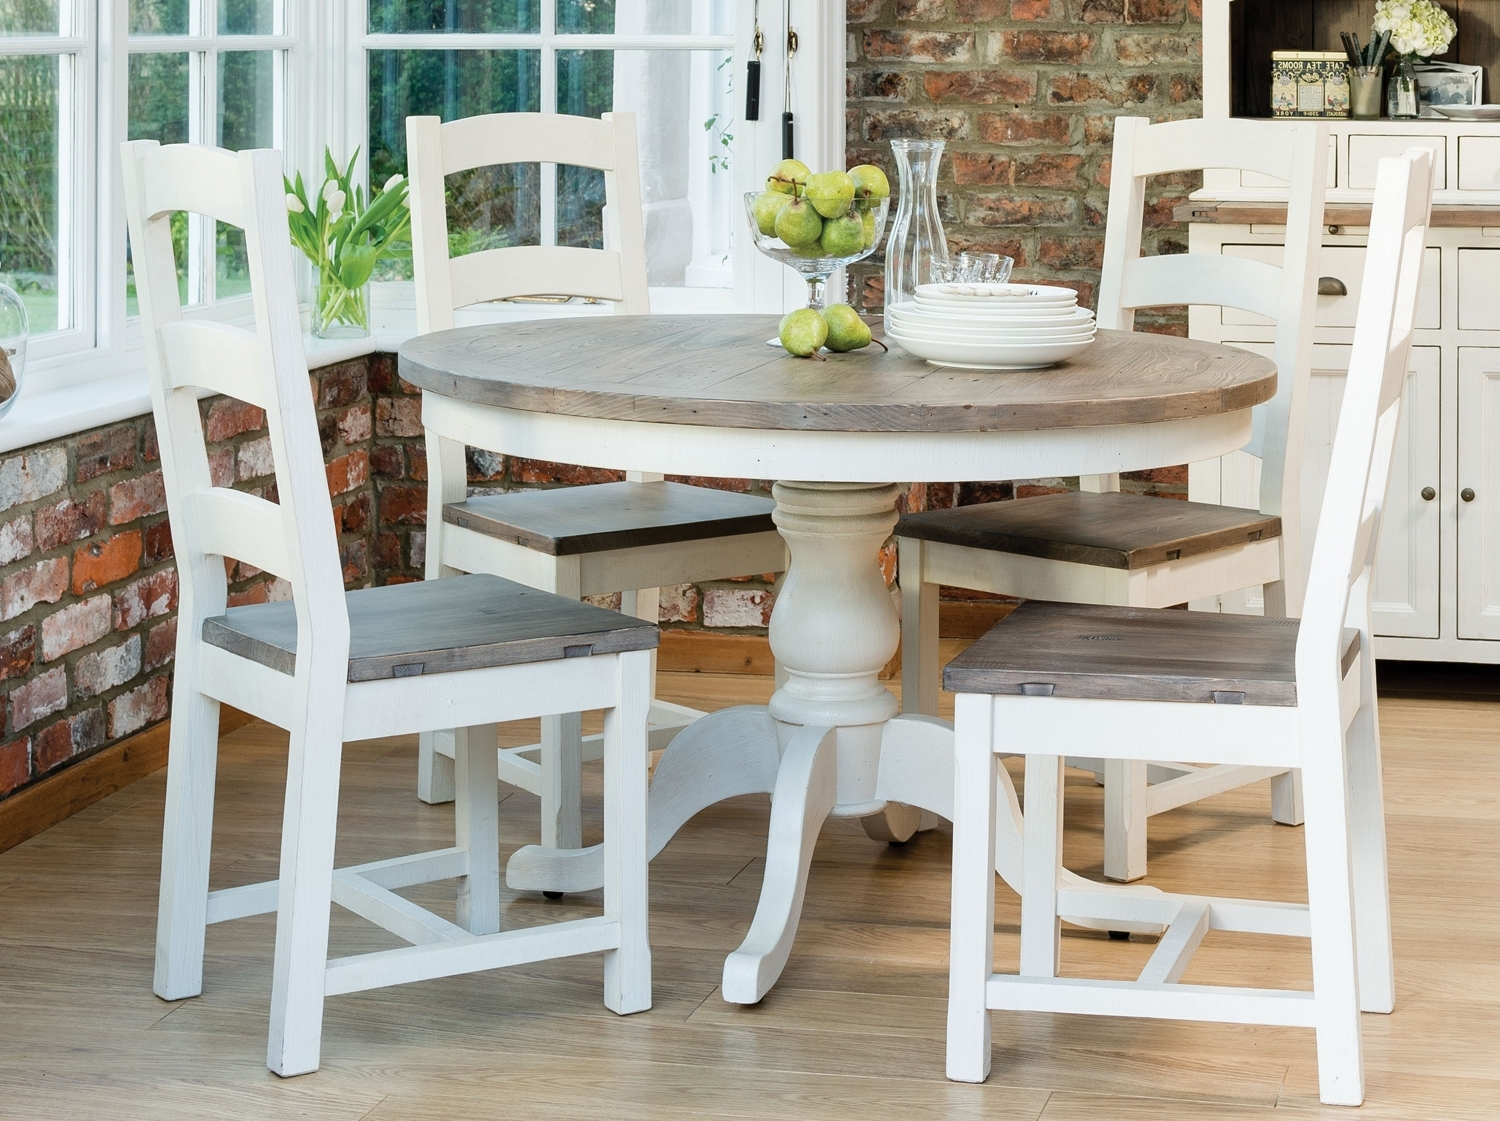 French Country Round Dining Table From Dansk Intended For Well Known Country Dining Tables (View 11 of 25)